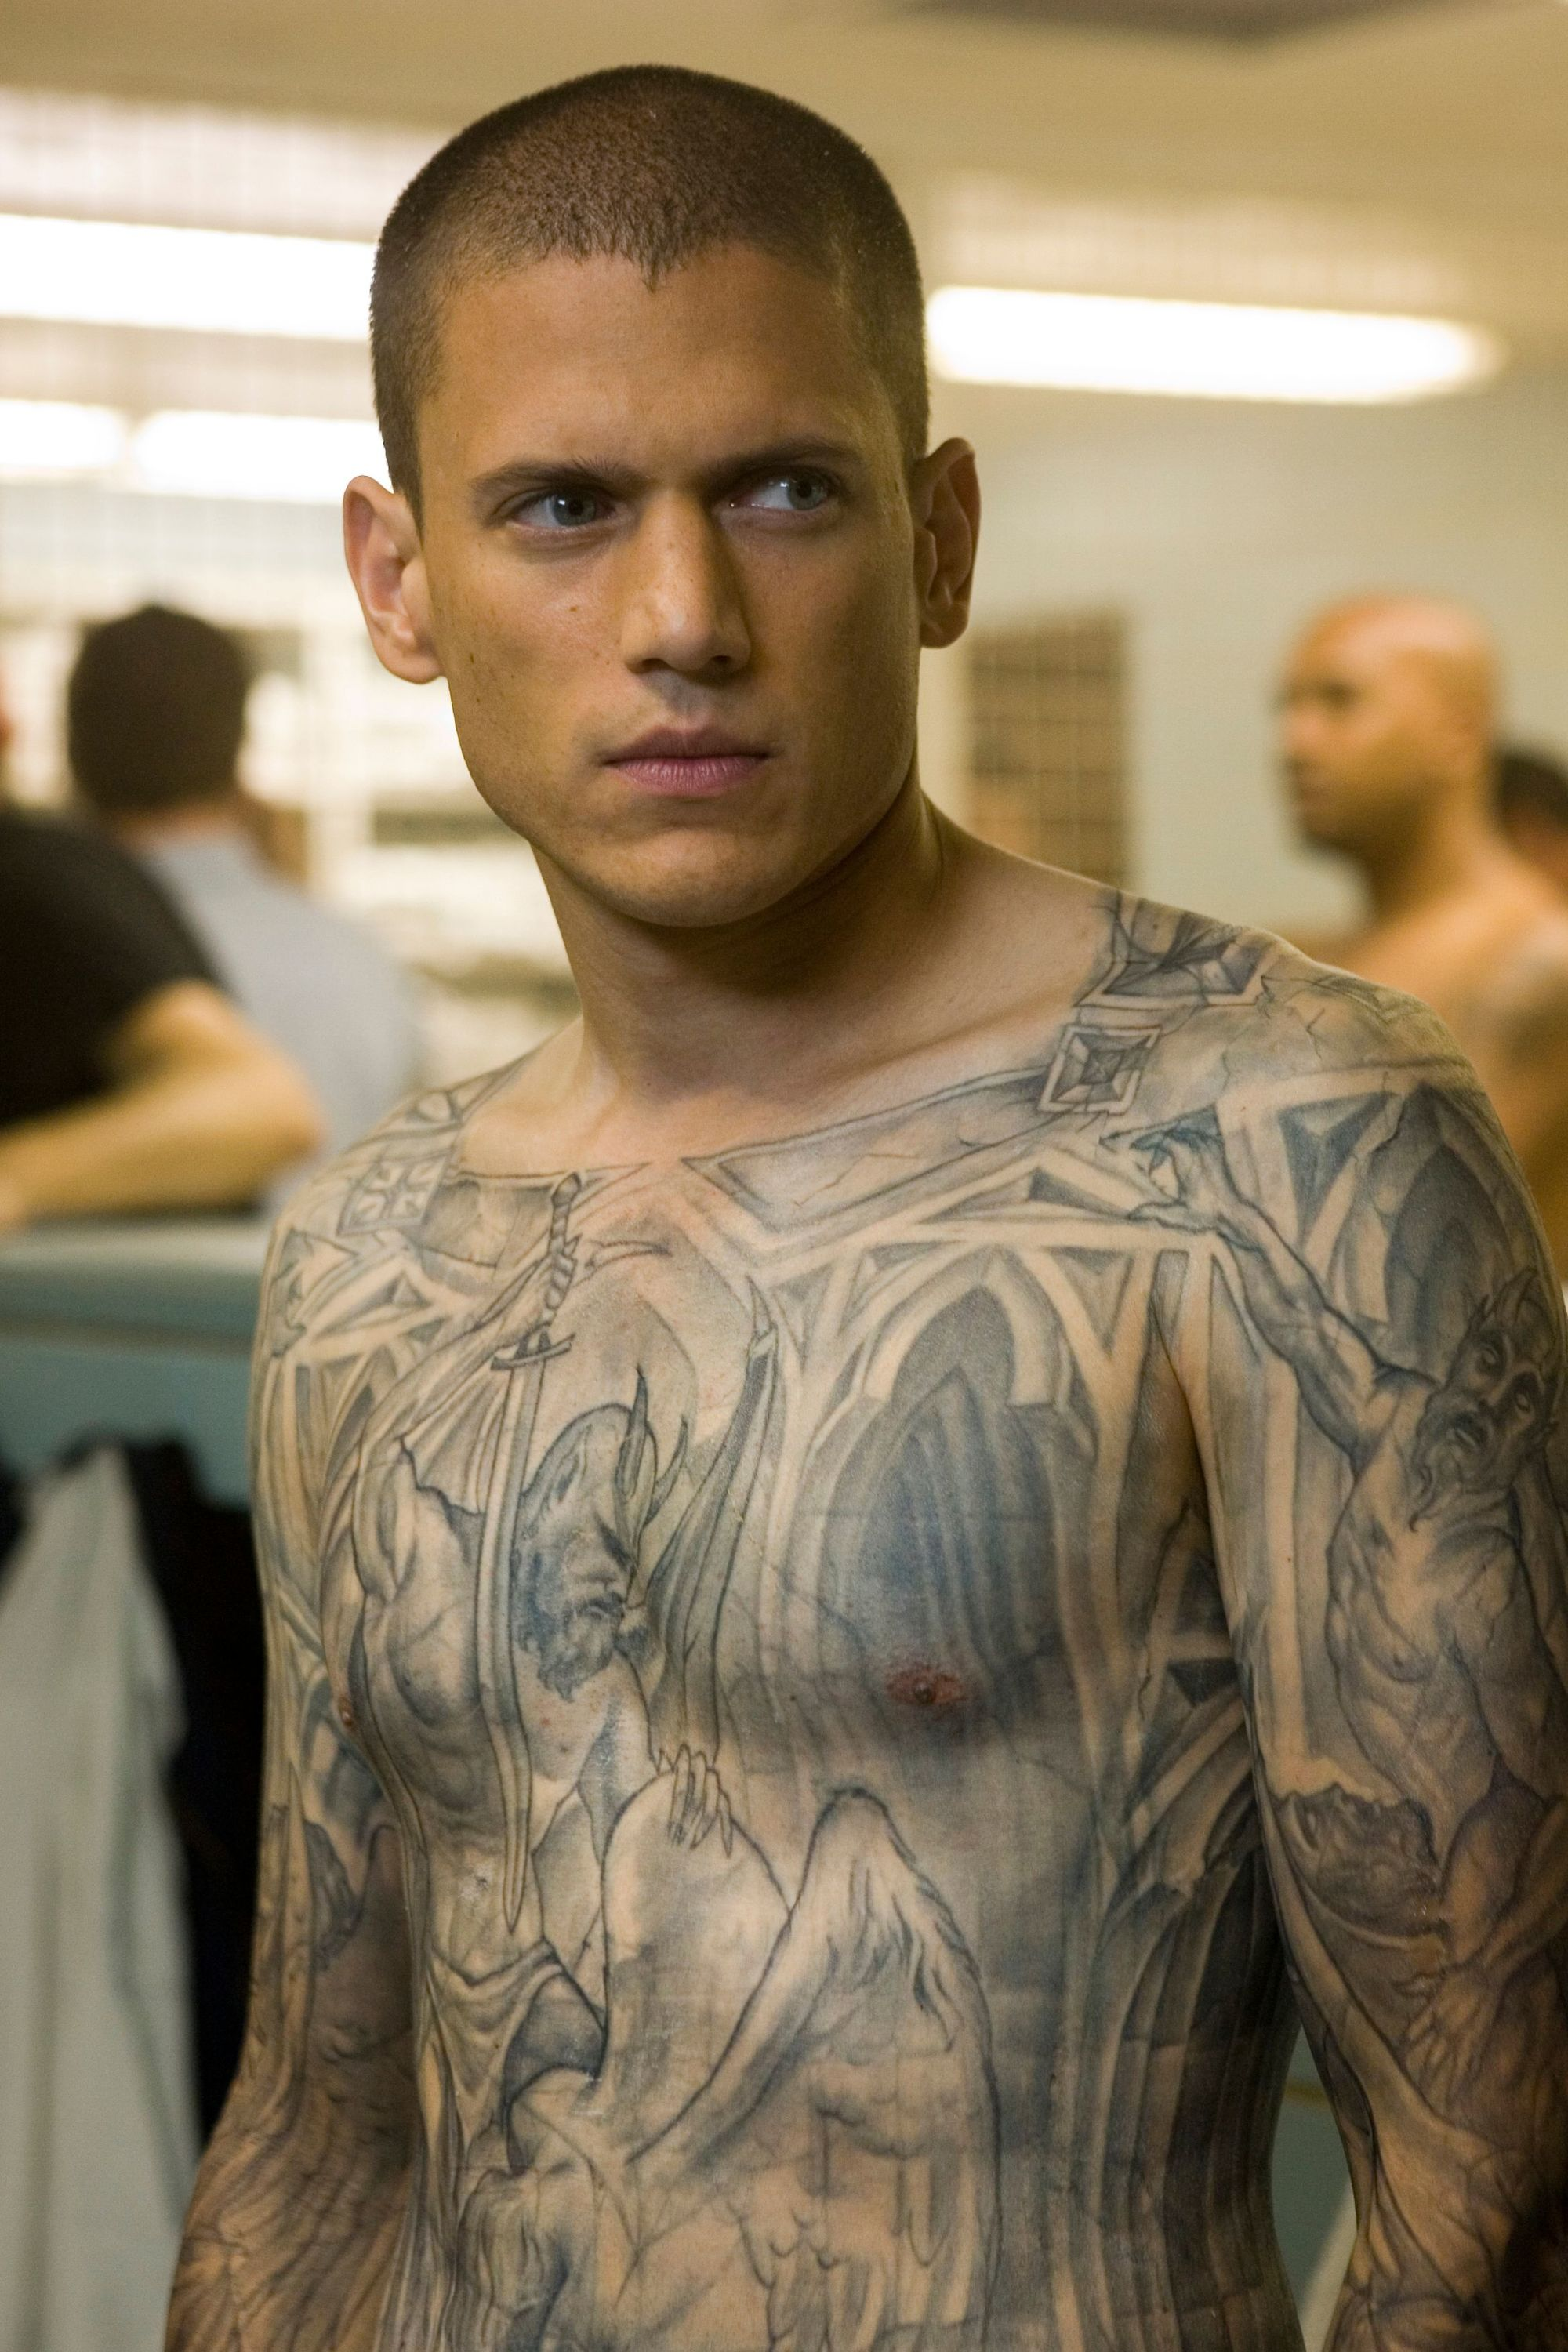 Michael Scofield from the TV show Prison Break.